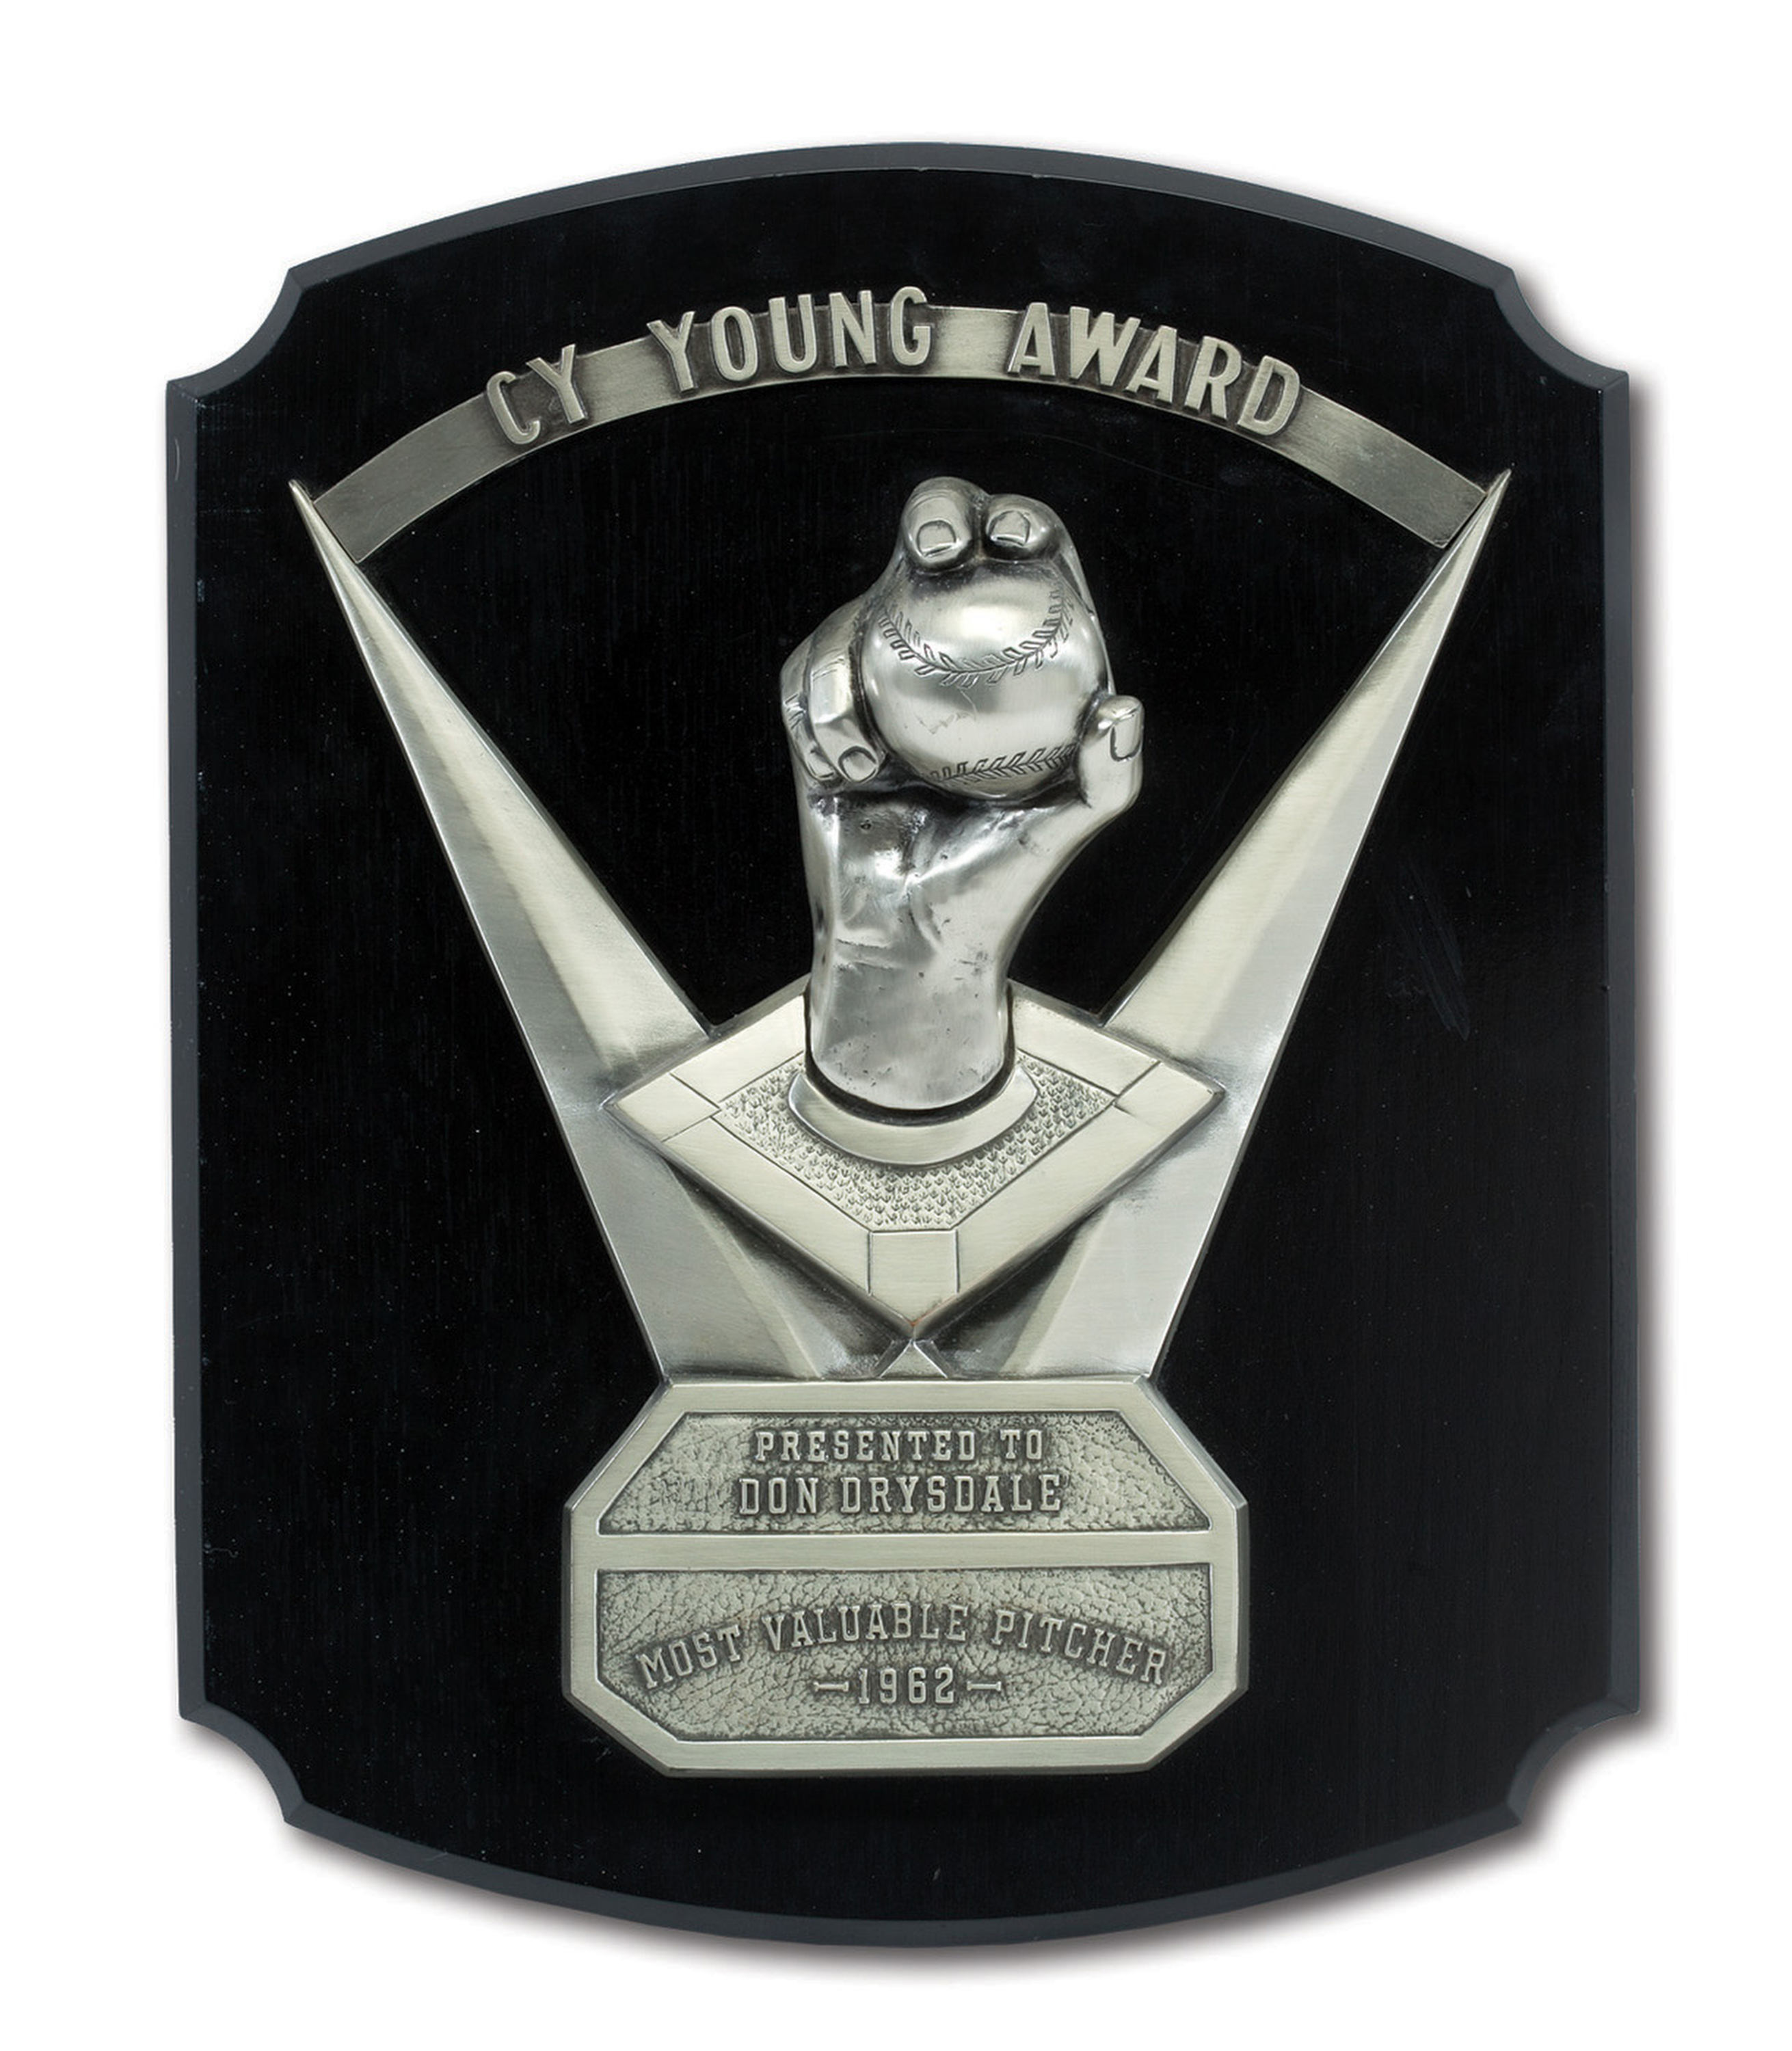 FILE - In this undated file photo provided by SCP Auctions, former major league pitcher Don Drysdale's 1962 Cy Young award is displayed. The award sold at auction for $100,100. (Leslie Larsen Bird/SCP Auctions via AP, File)